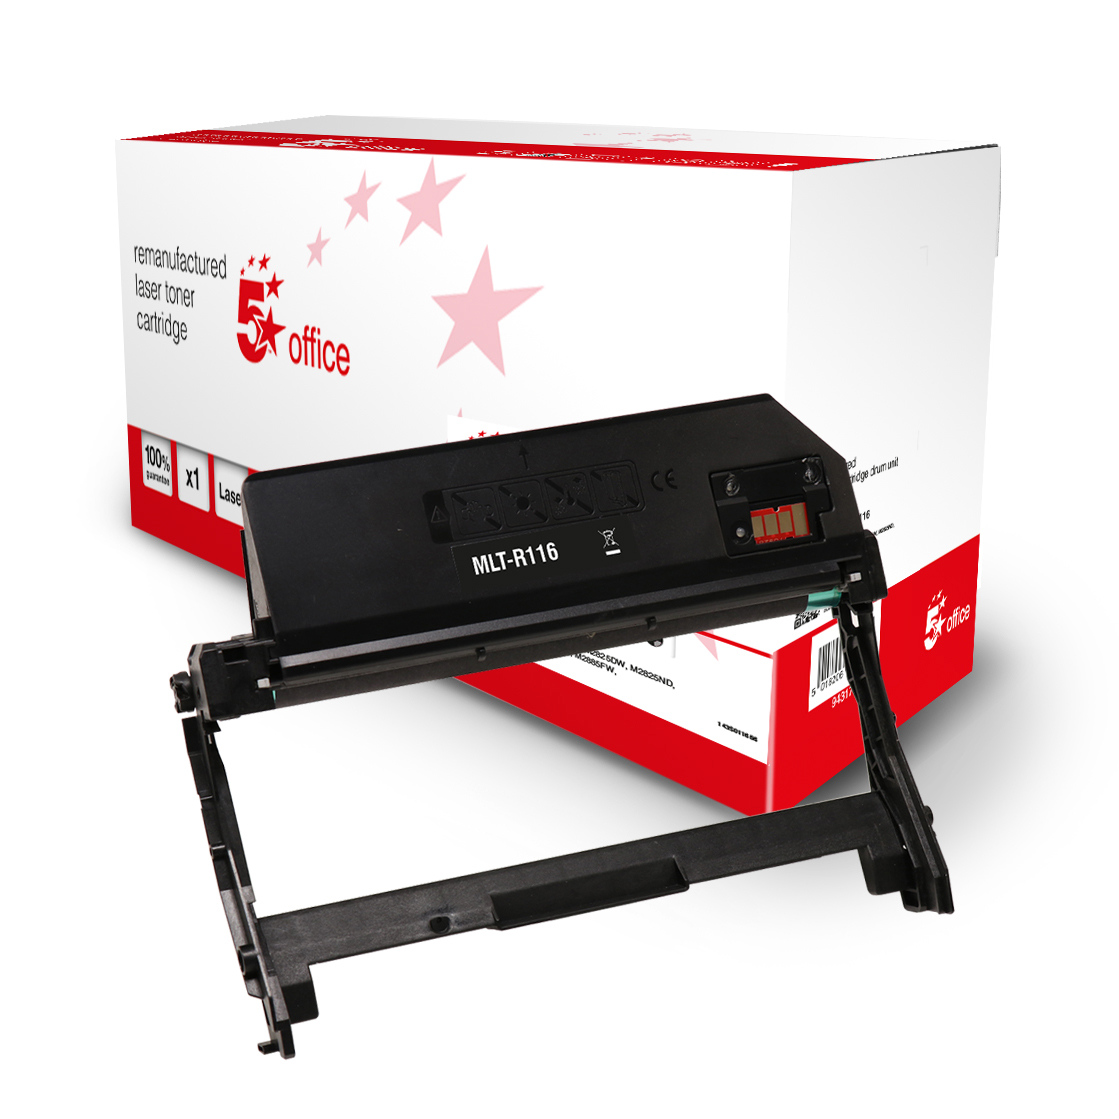 Laser Toner Cartridges 5 Star Office Remanufactured OPC Drum Page Life Black 9000pp Samsung MLT-R116/SEE Alternative